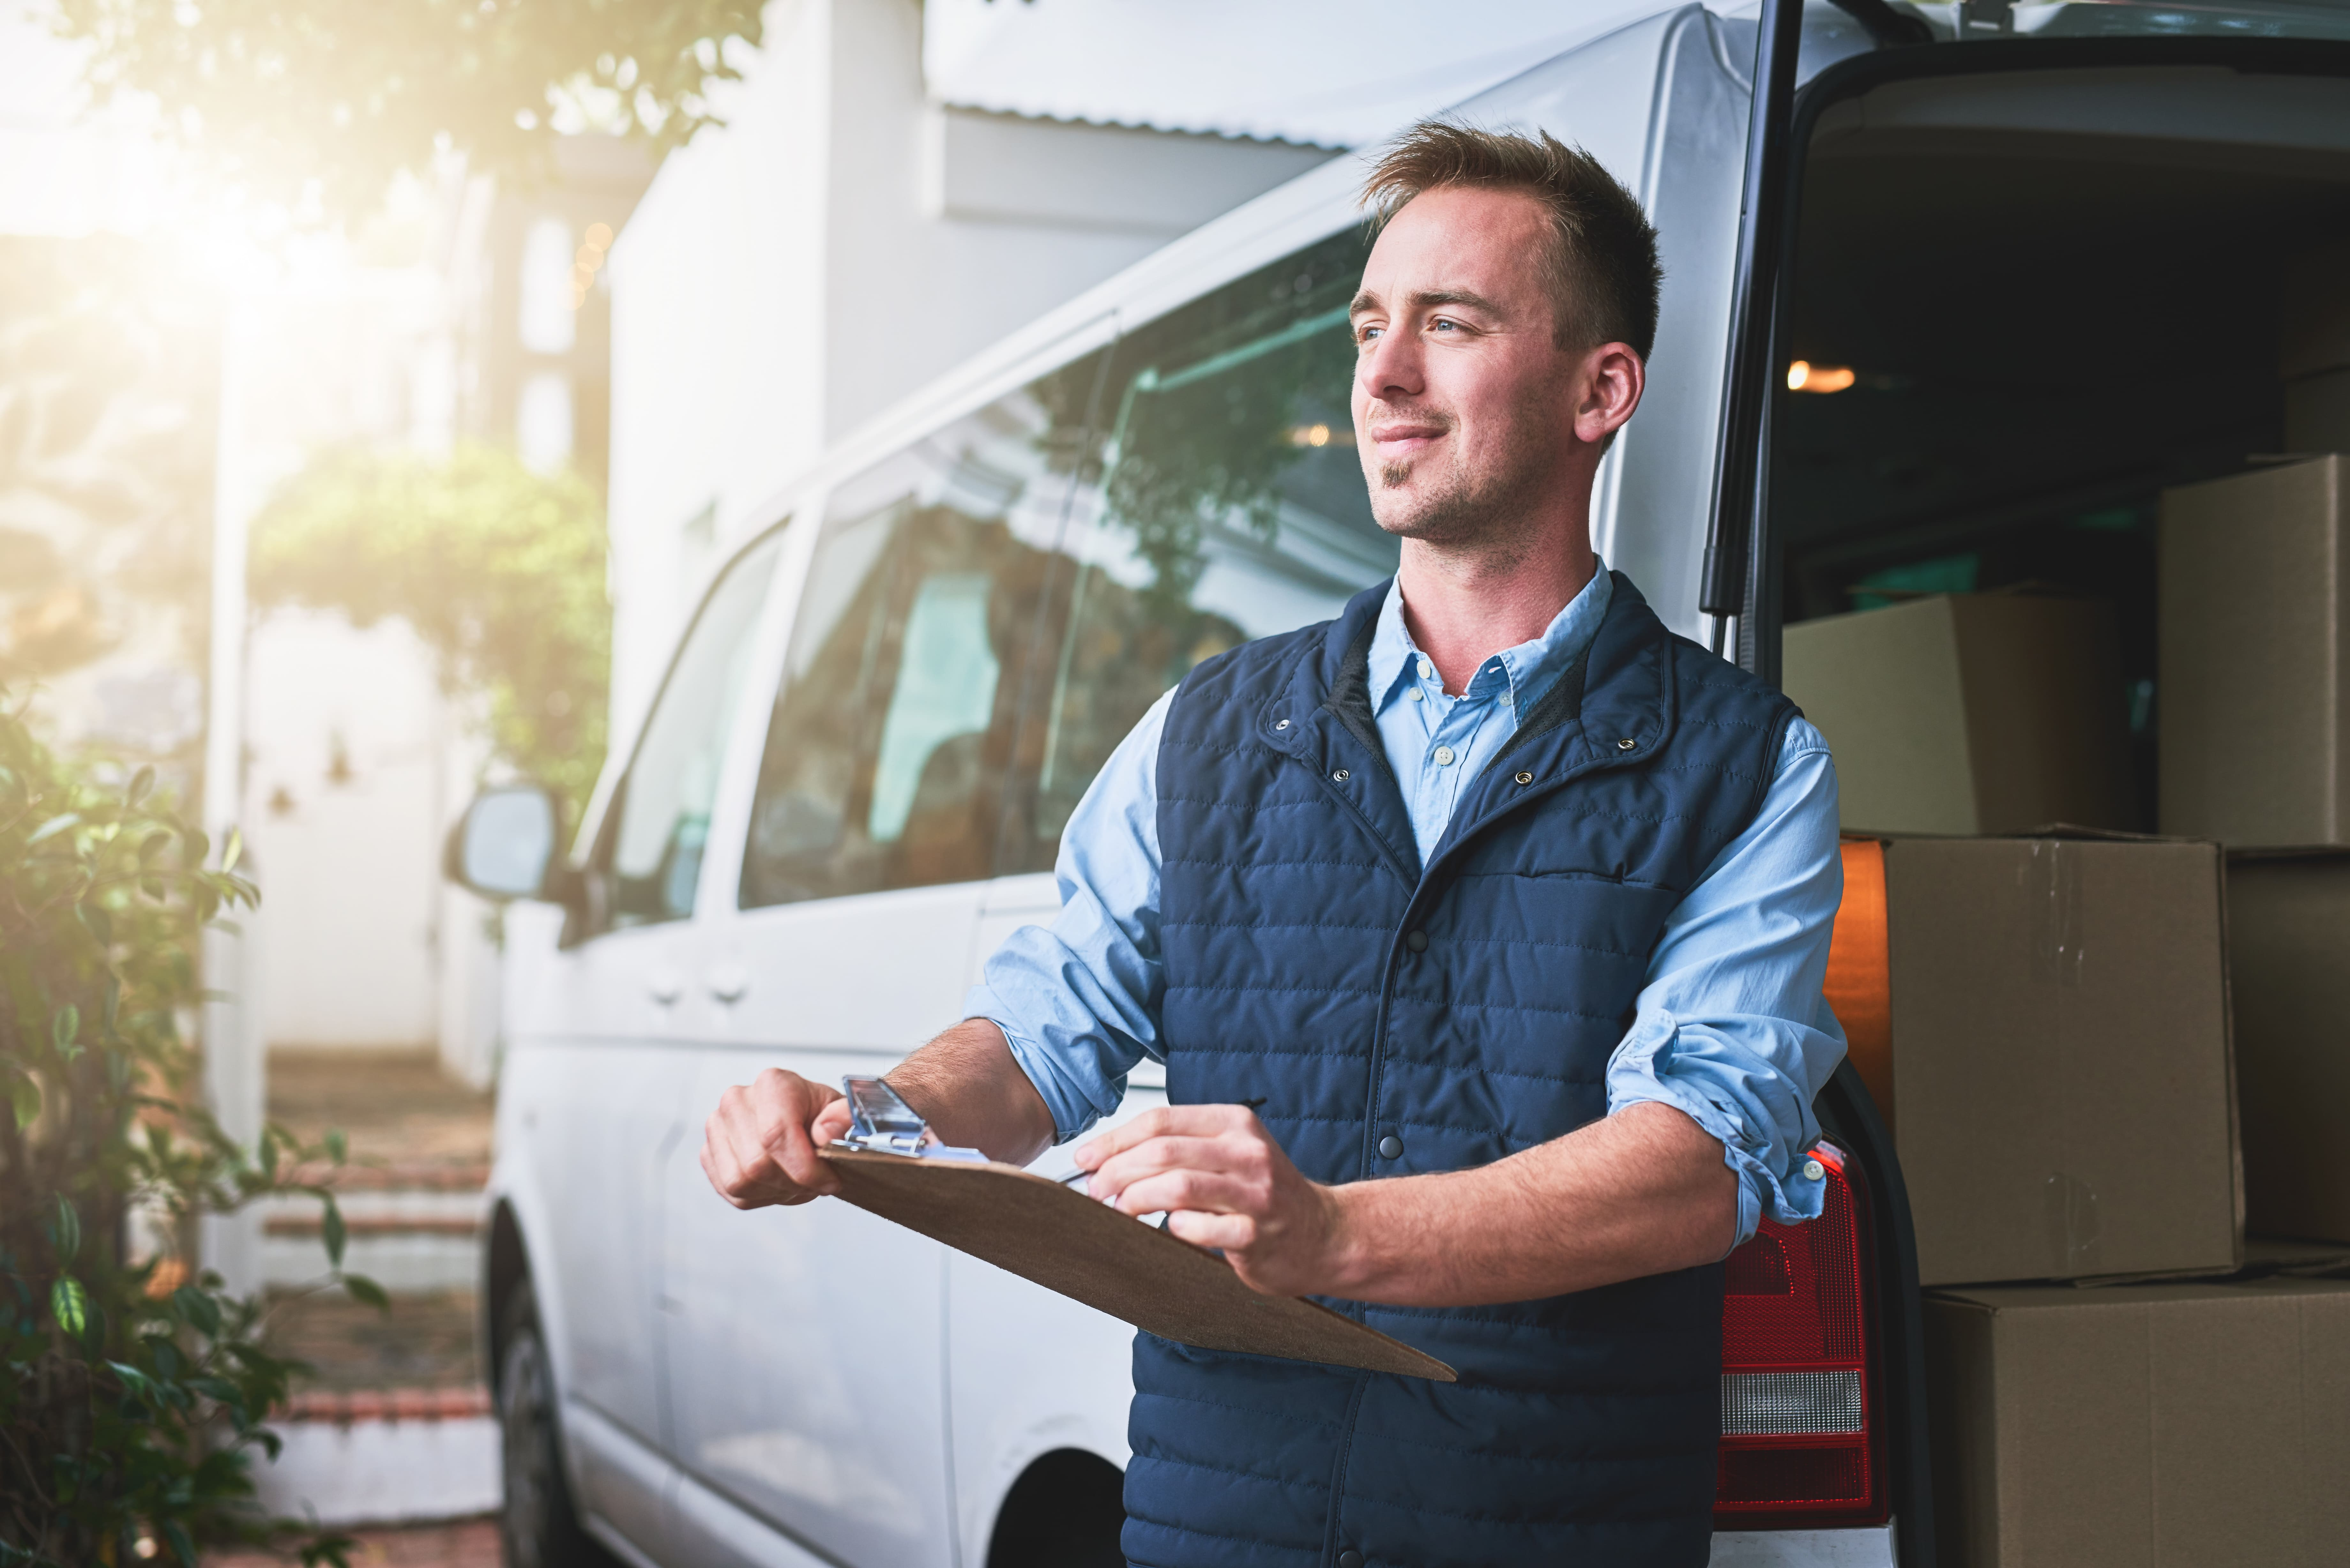 Find the right commercial insurance to protect yourself and your vehicle as you rideshare or deliver cargo.